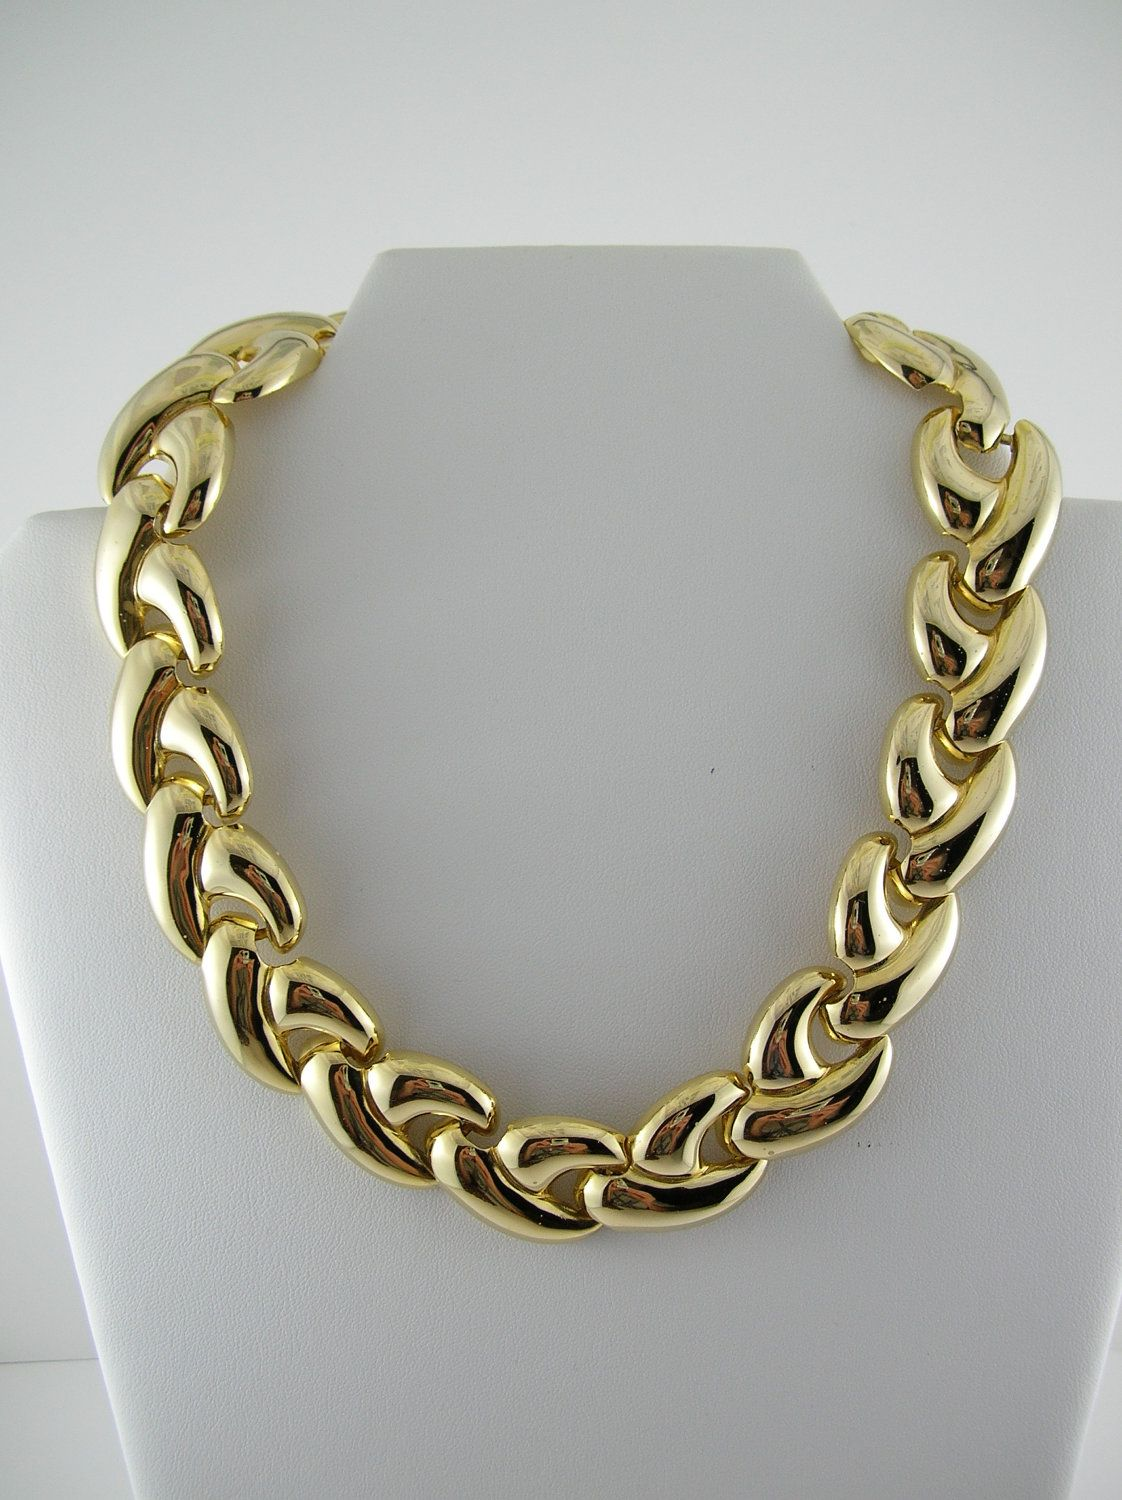 Vintage Gold Necklace Choker Collar 80s Chunky Thick Gold Chain Link 1980s  Mod Retro Boho Hipster Pin Up Mad Men Modernist